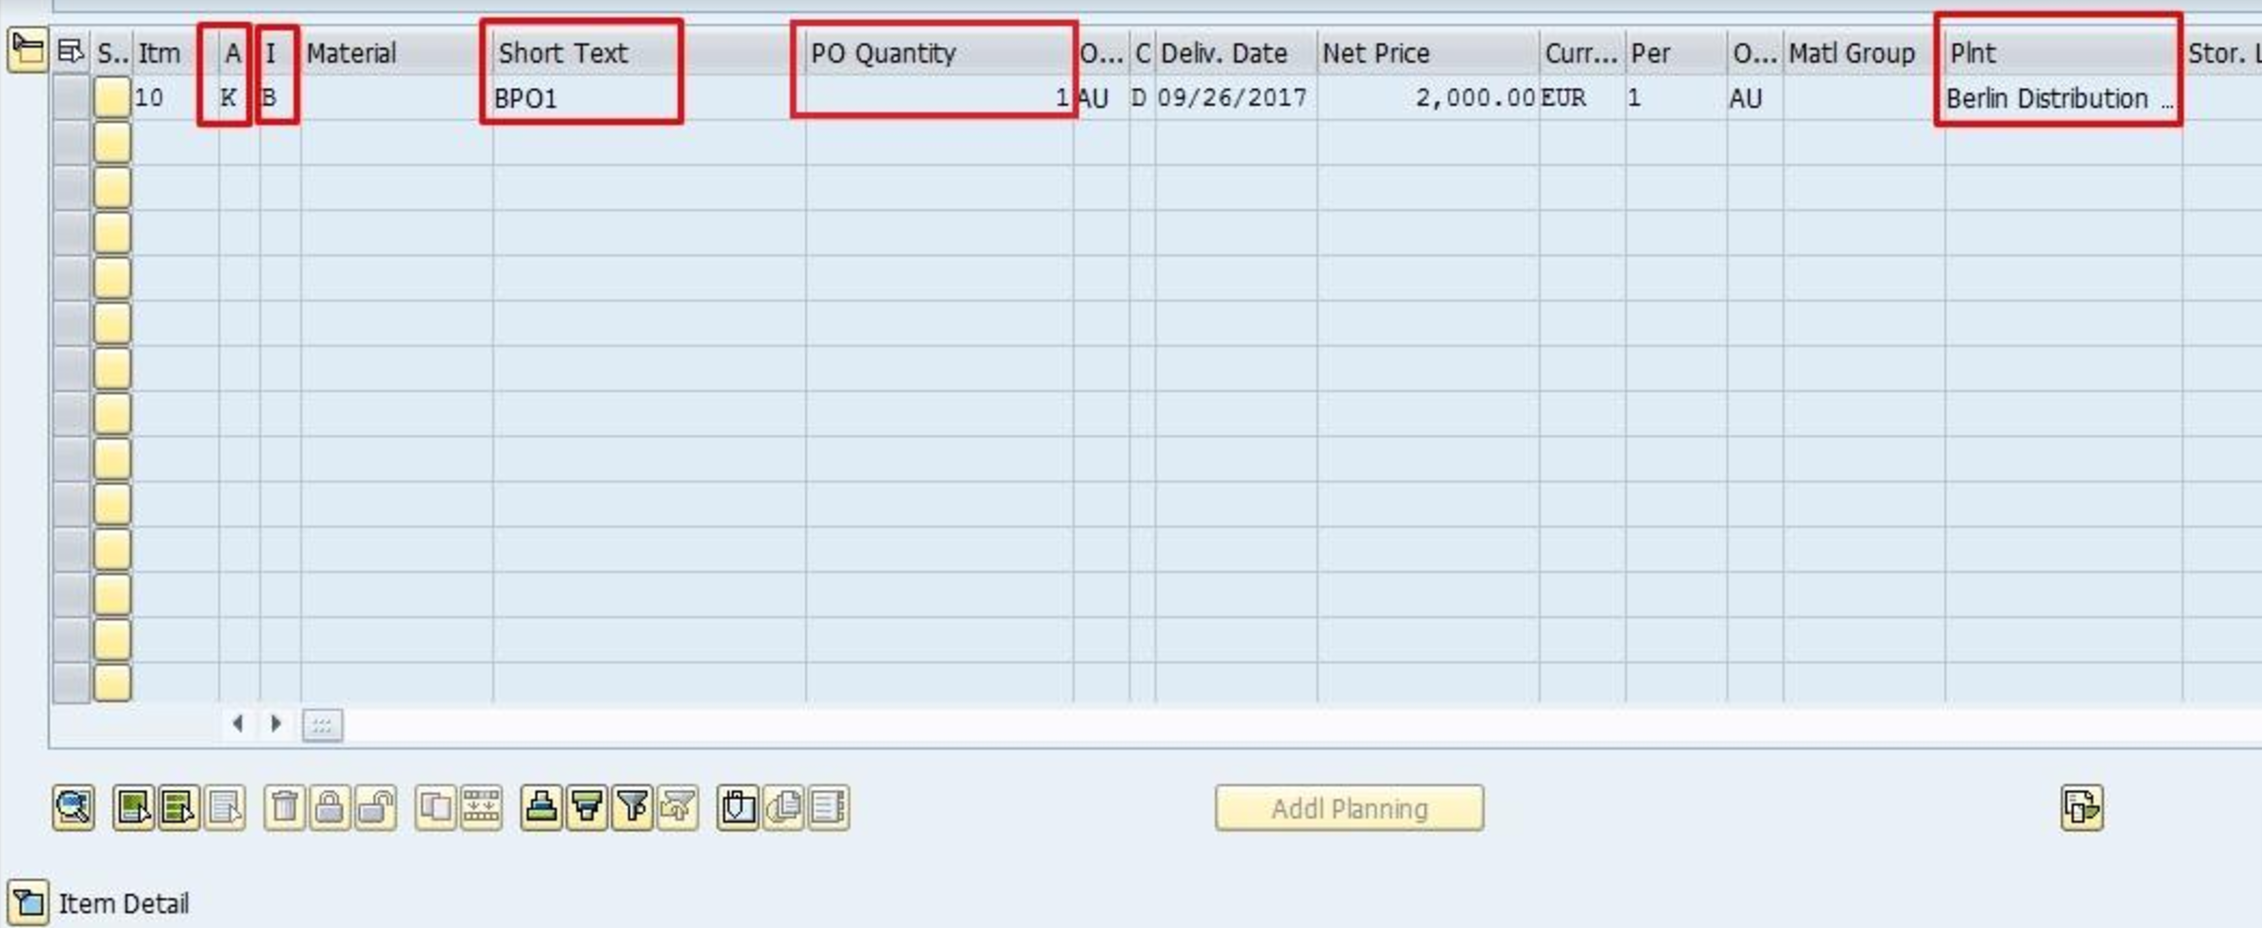 Blanket Purchase Order Item Data